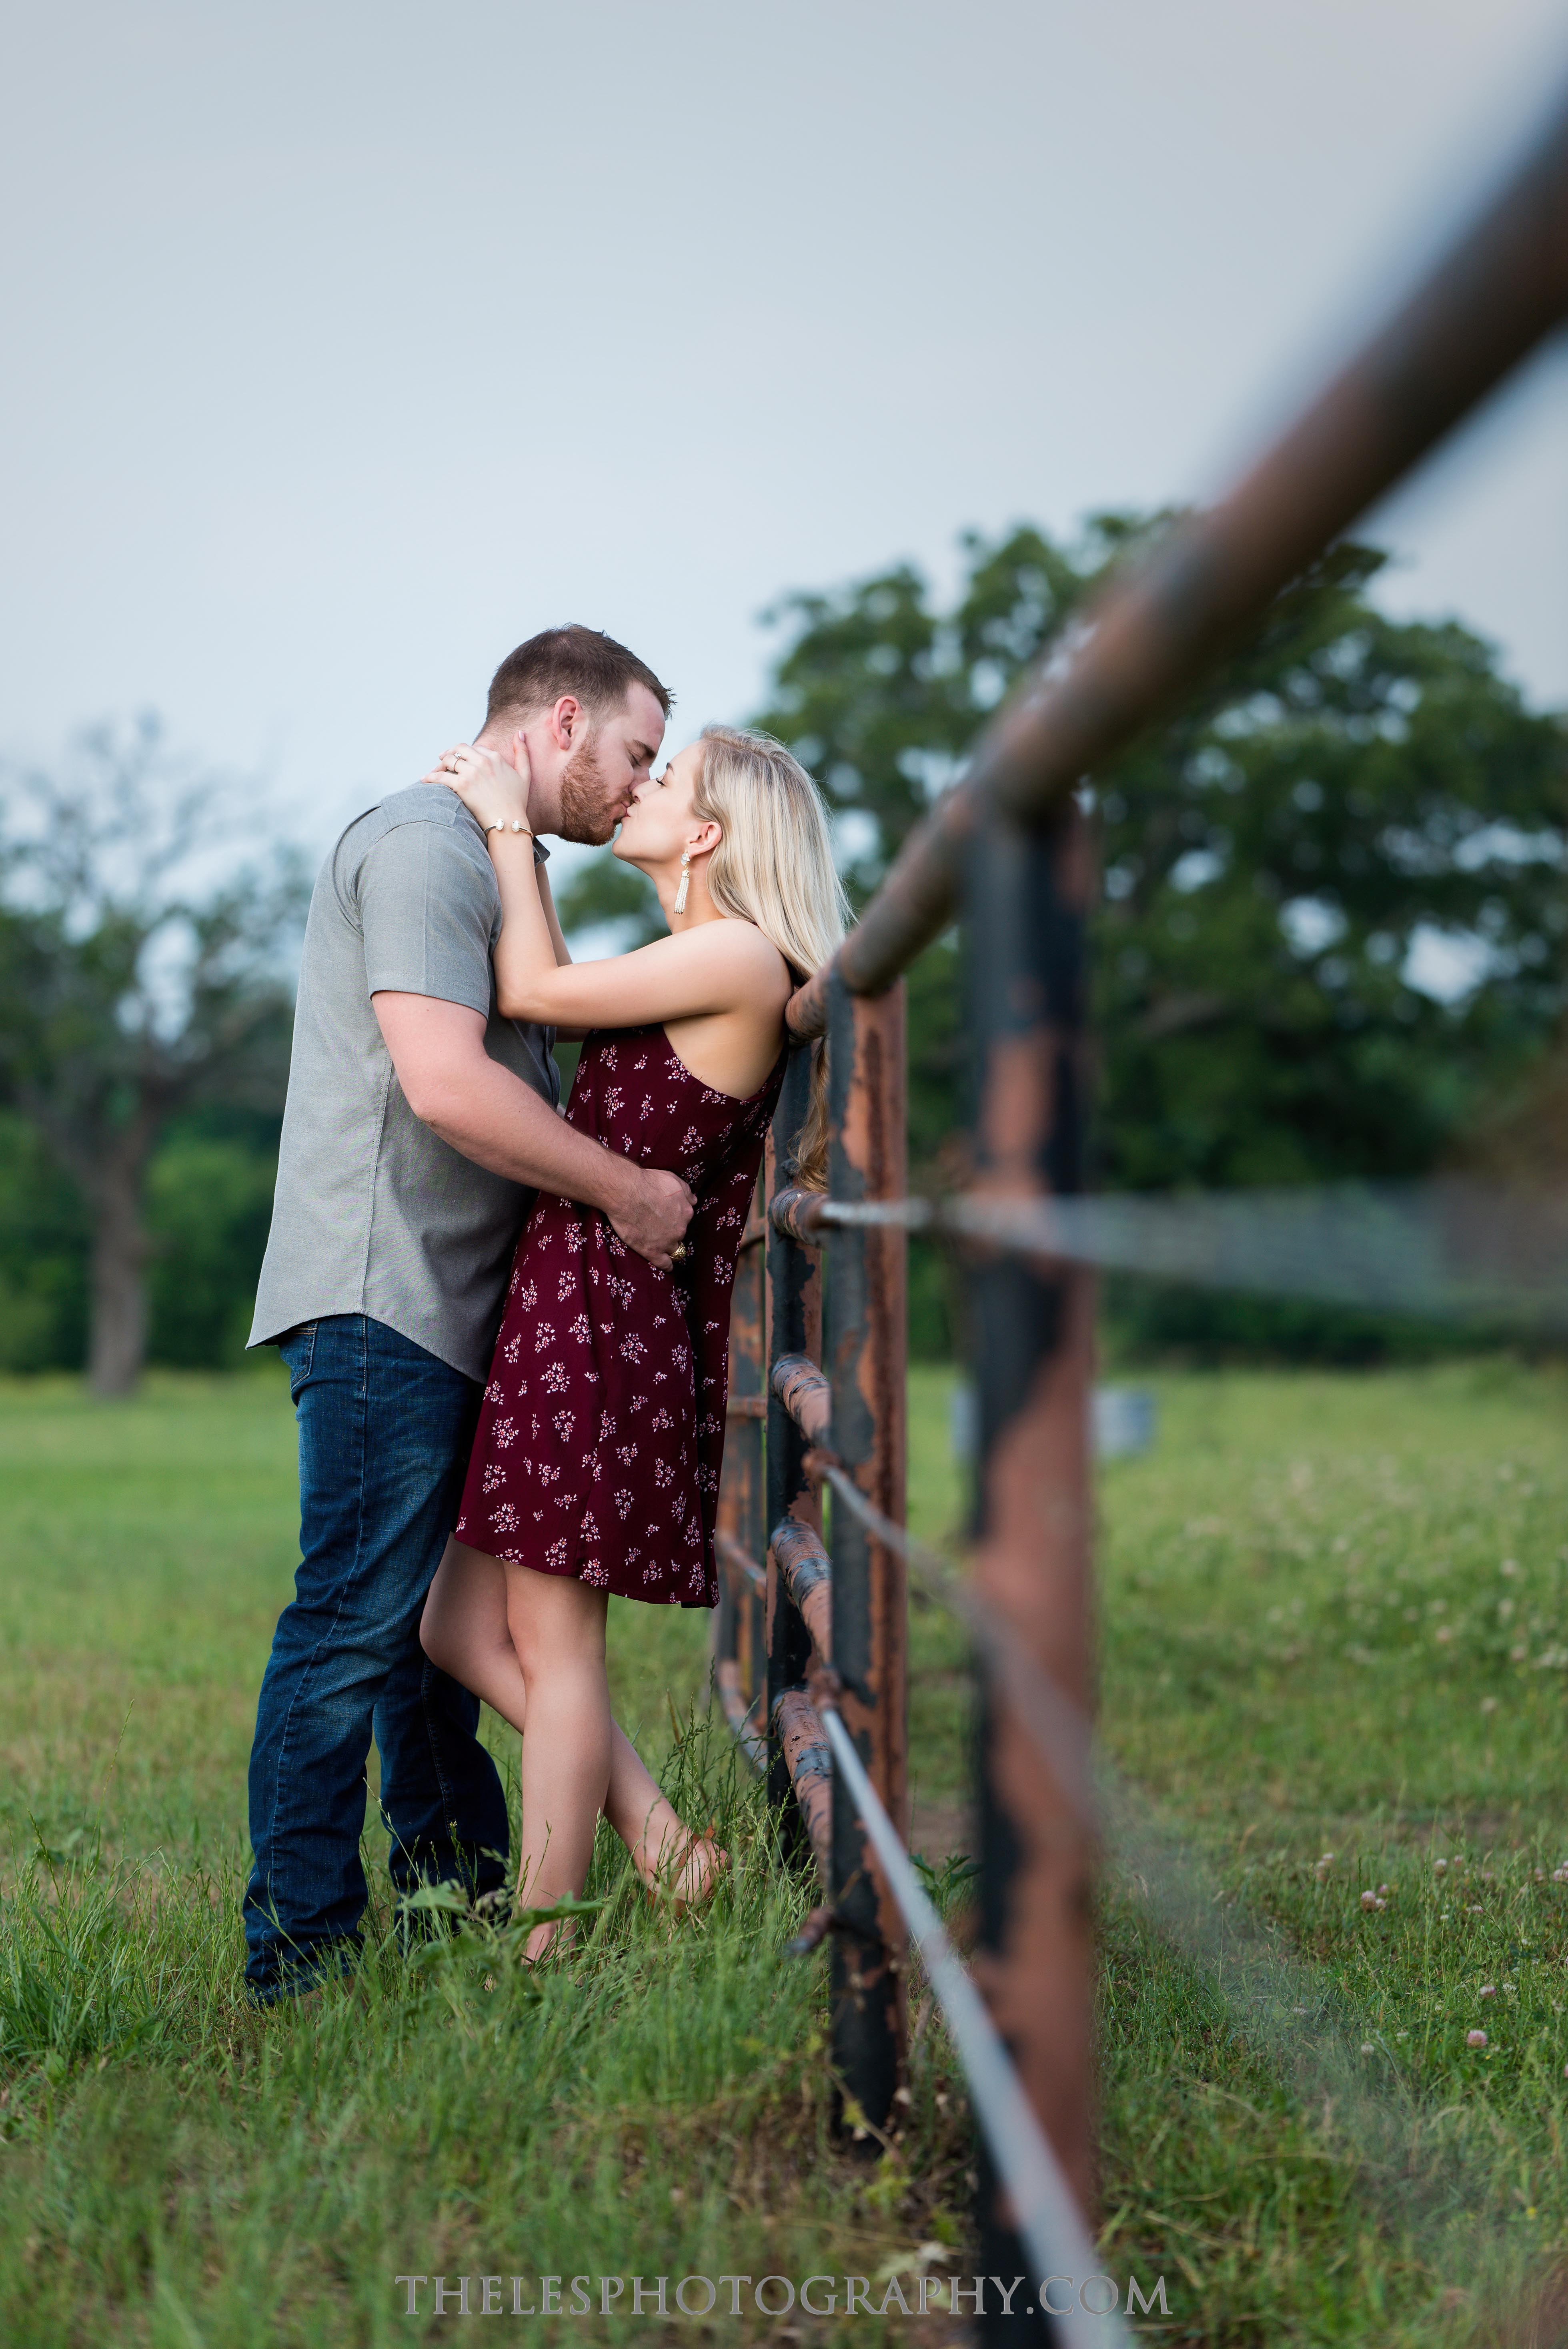 The Les Photography - Dallas Wedding Photographer - Trinity Groves Engagement - Haley and Noah 09